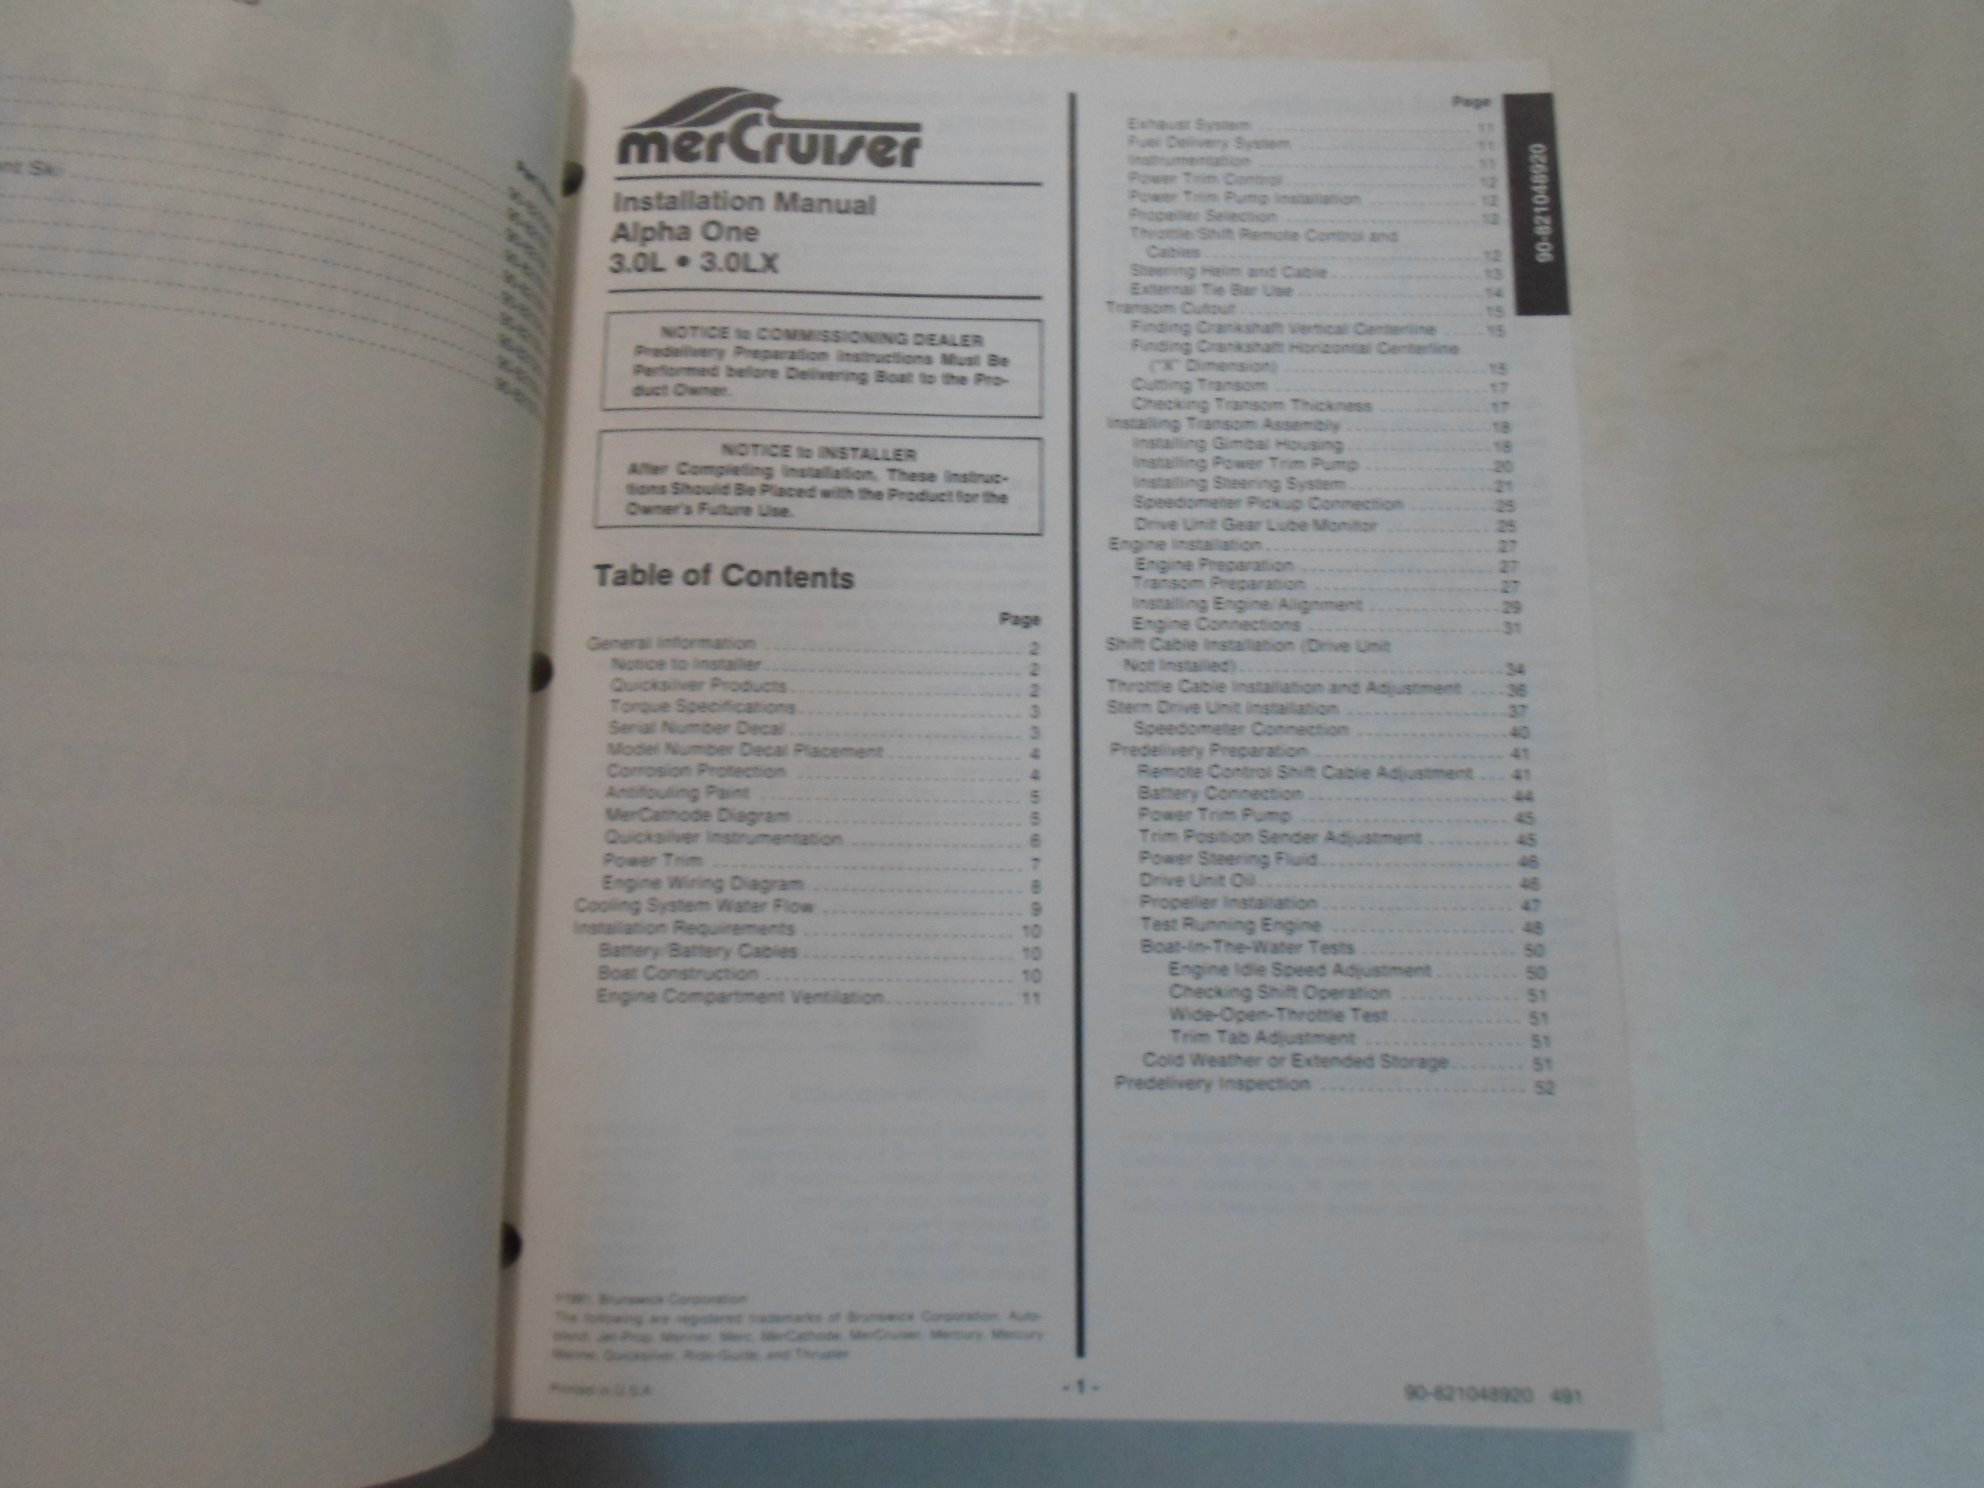 Alpha One Trim Wiring Diagram 1992 Mercruiser Installation Drawings For Standard Products Oem Manual Stained Brunswick Corporation Books